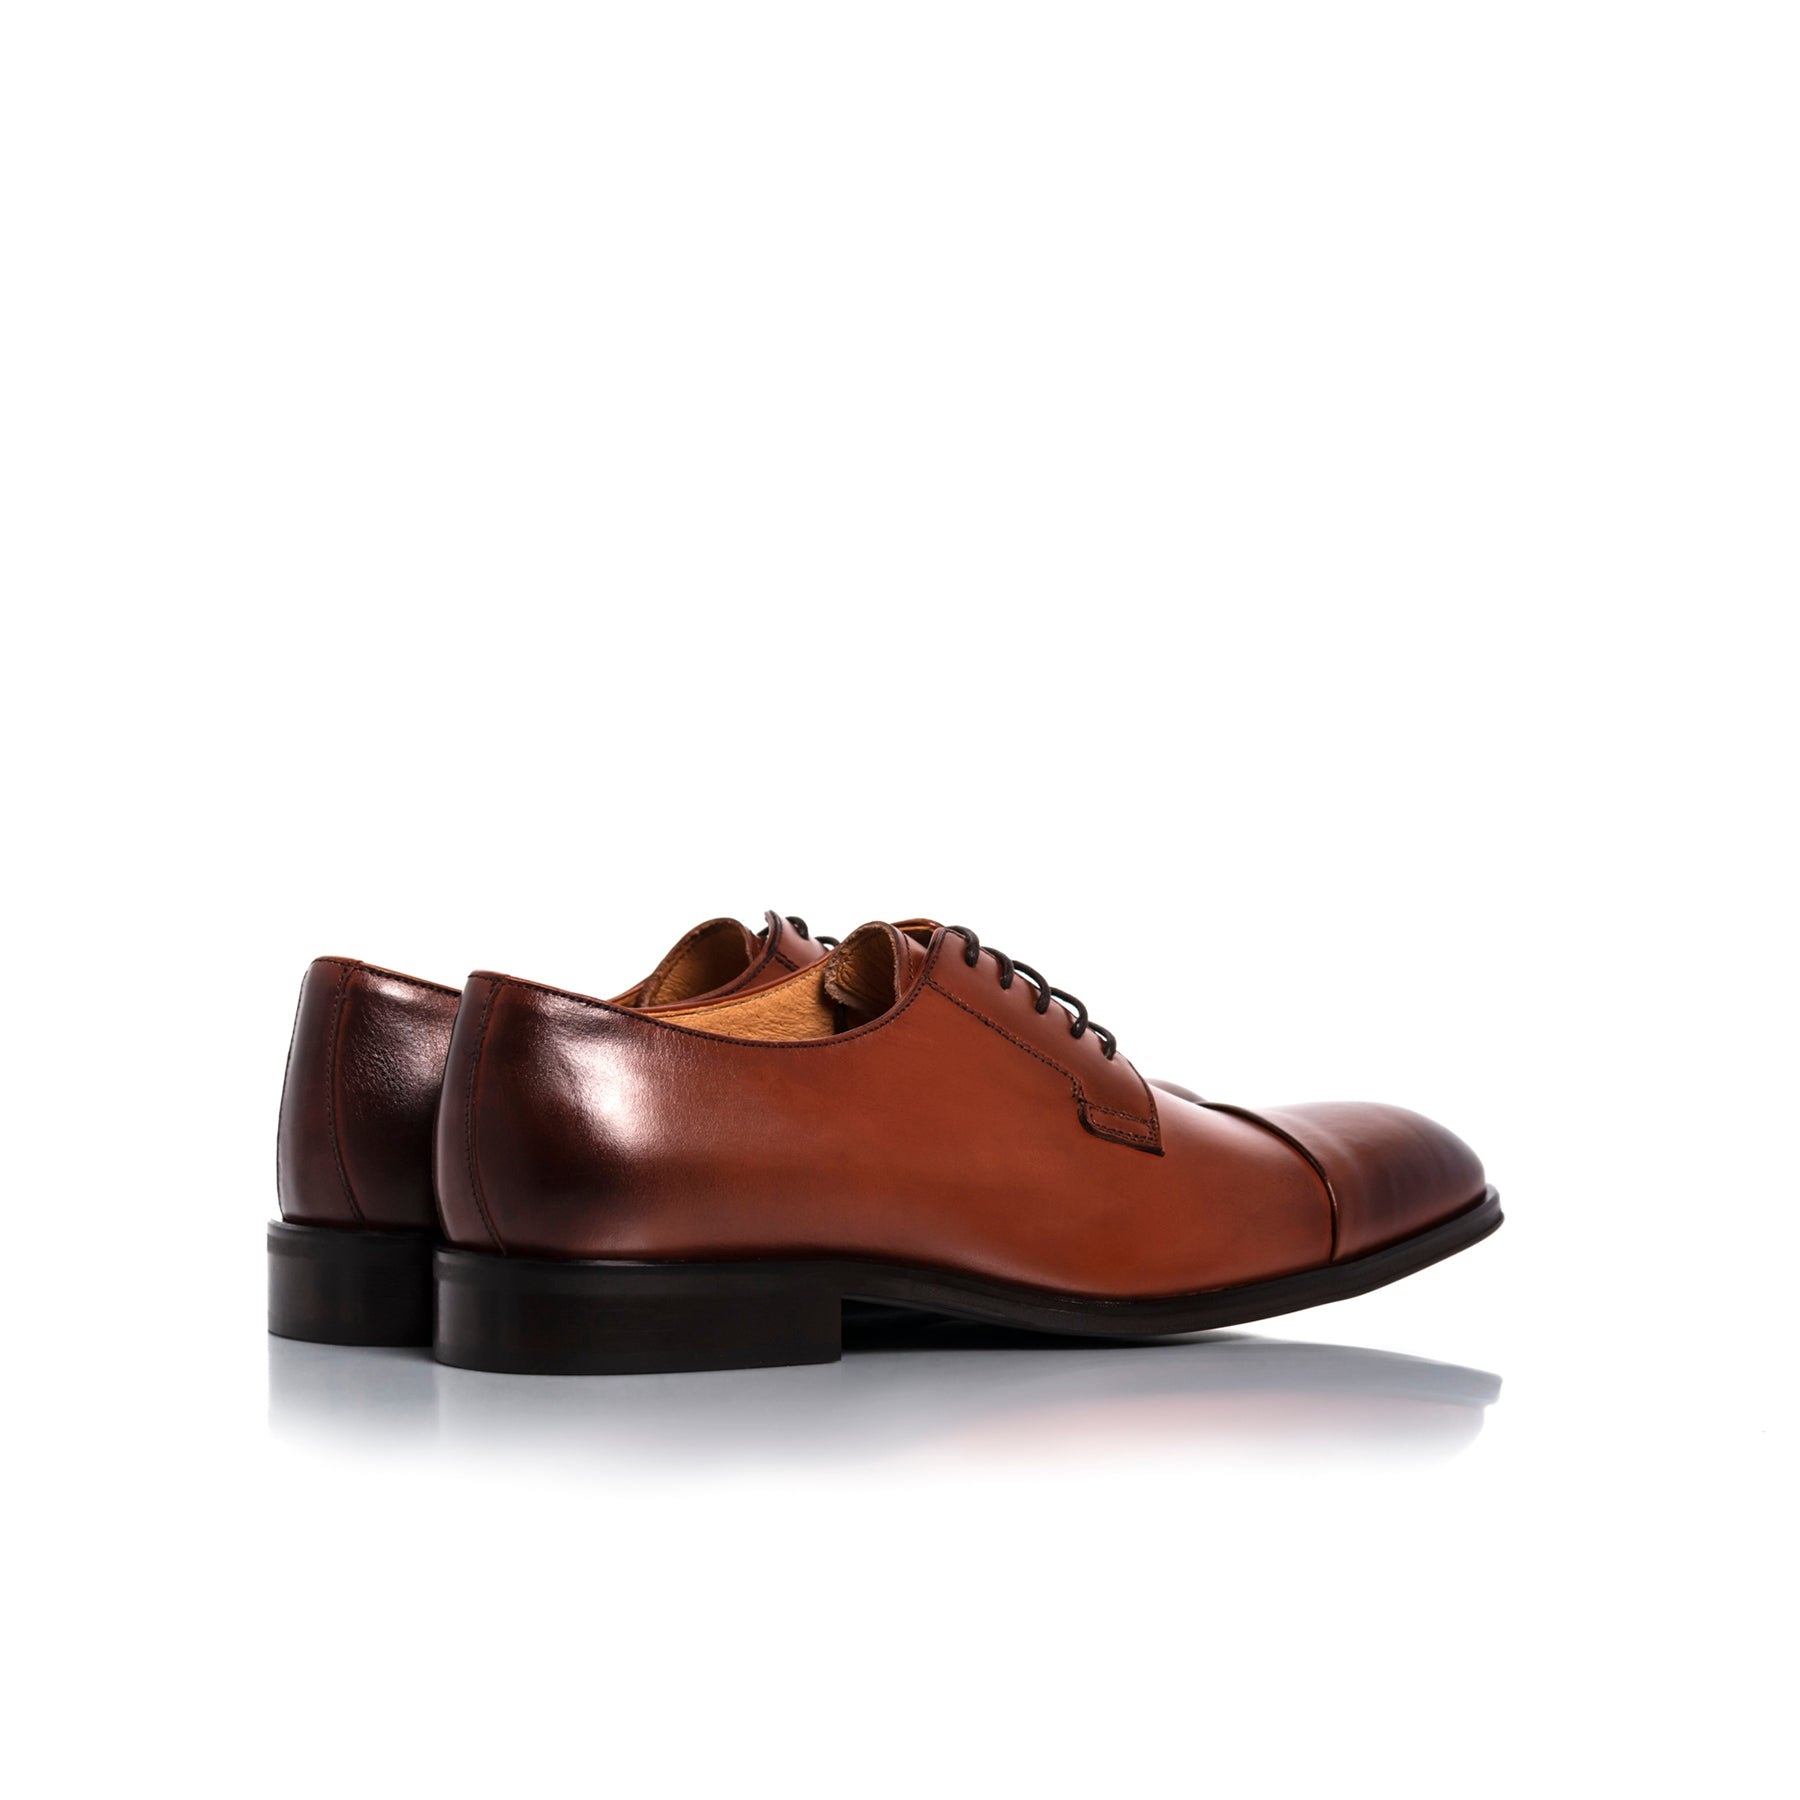 Barack Tan Leather Shoes